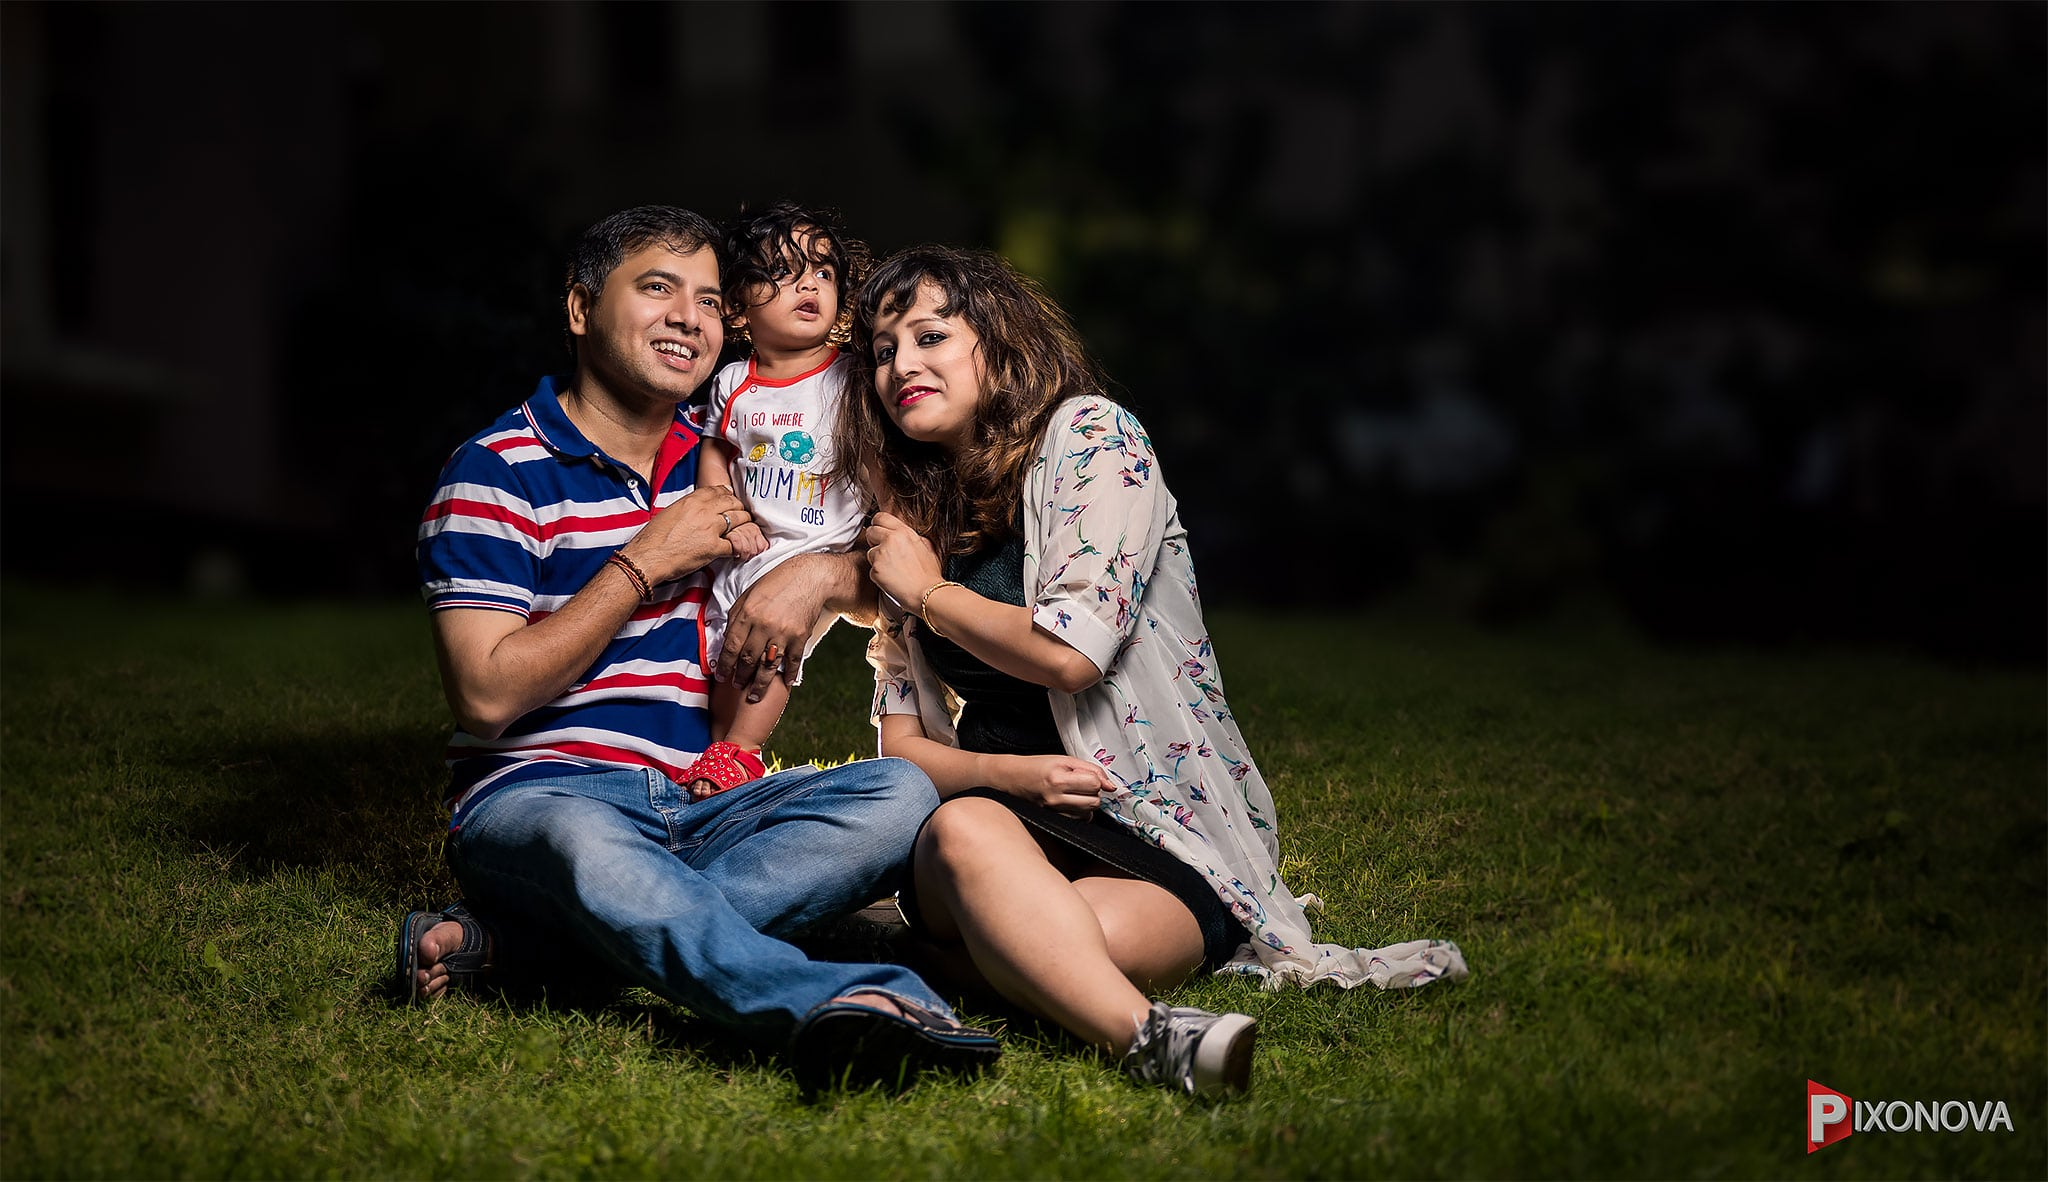 A complete family portrait sitting on grass shot by Rishav chakraborty Pixonova